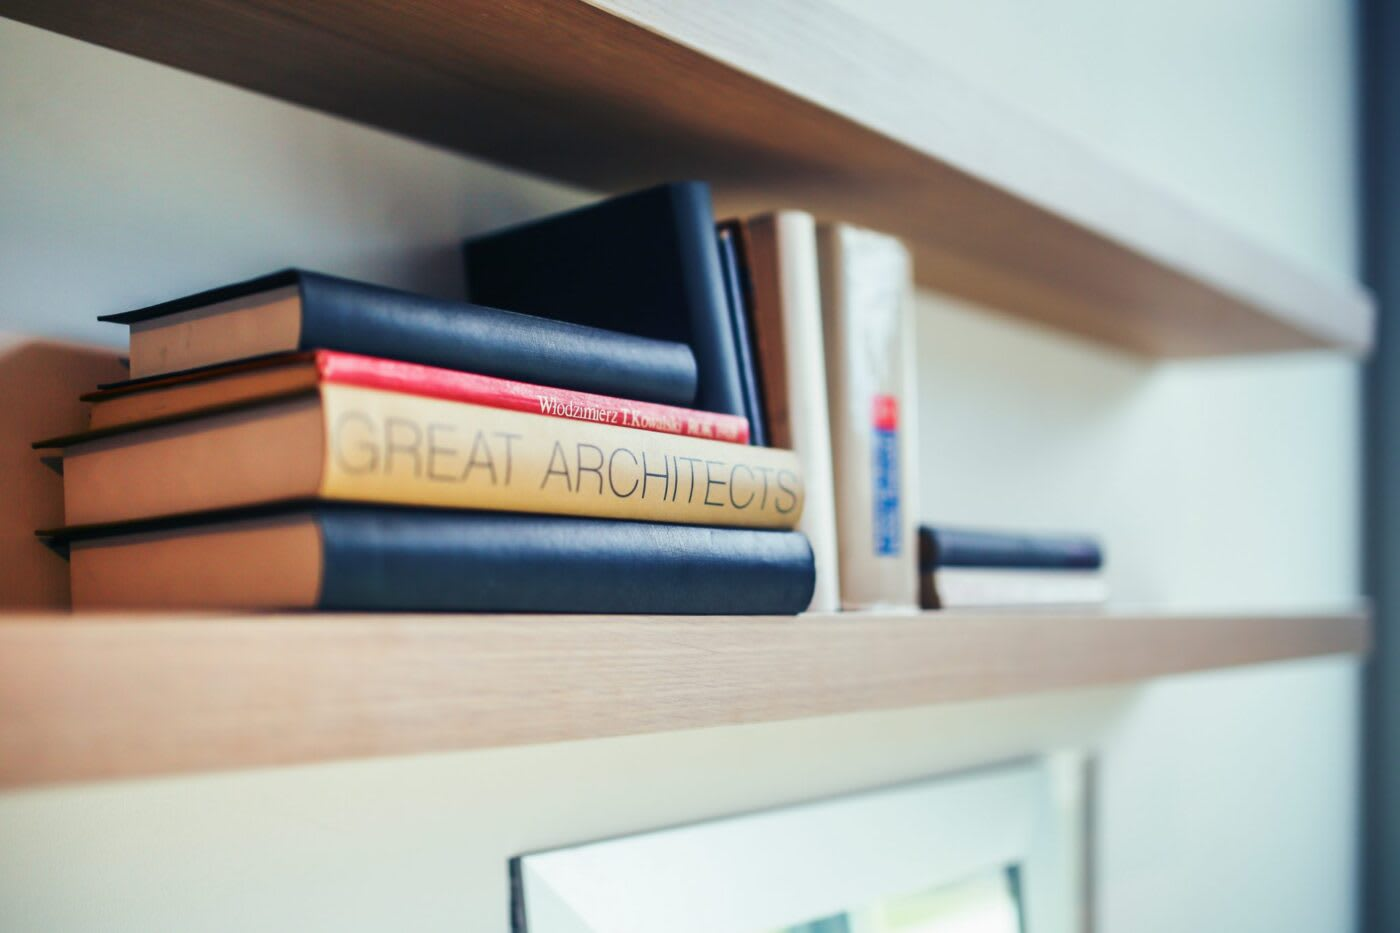 architect books bookshelf 5869 gqcxm5